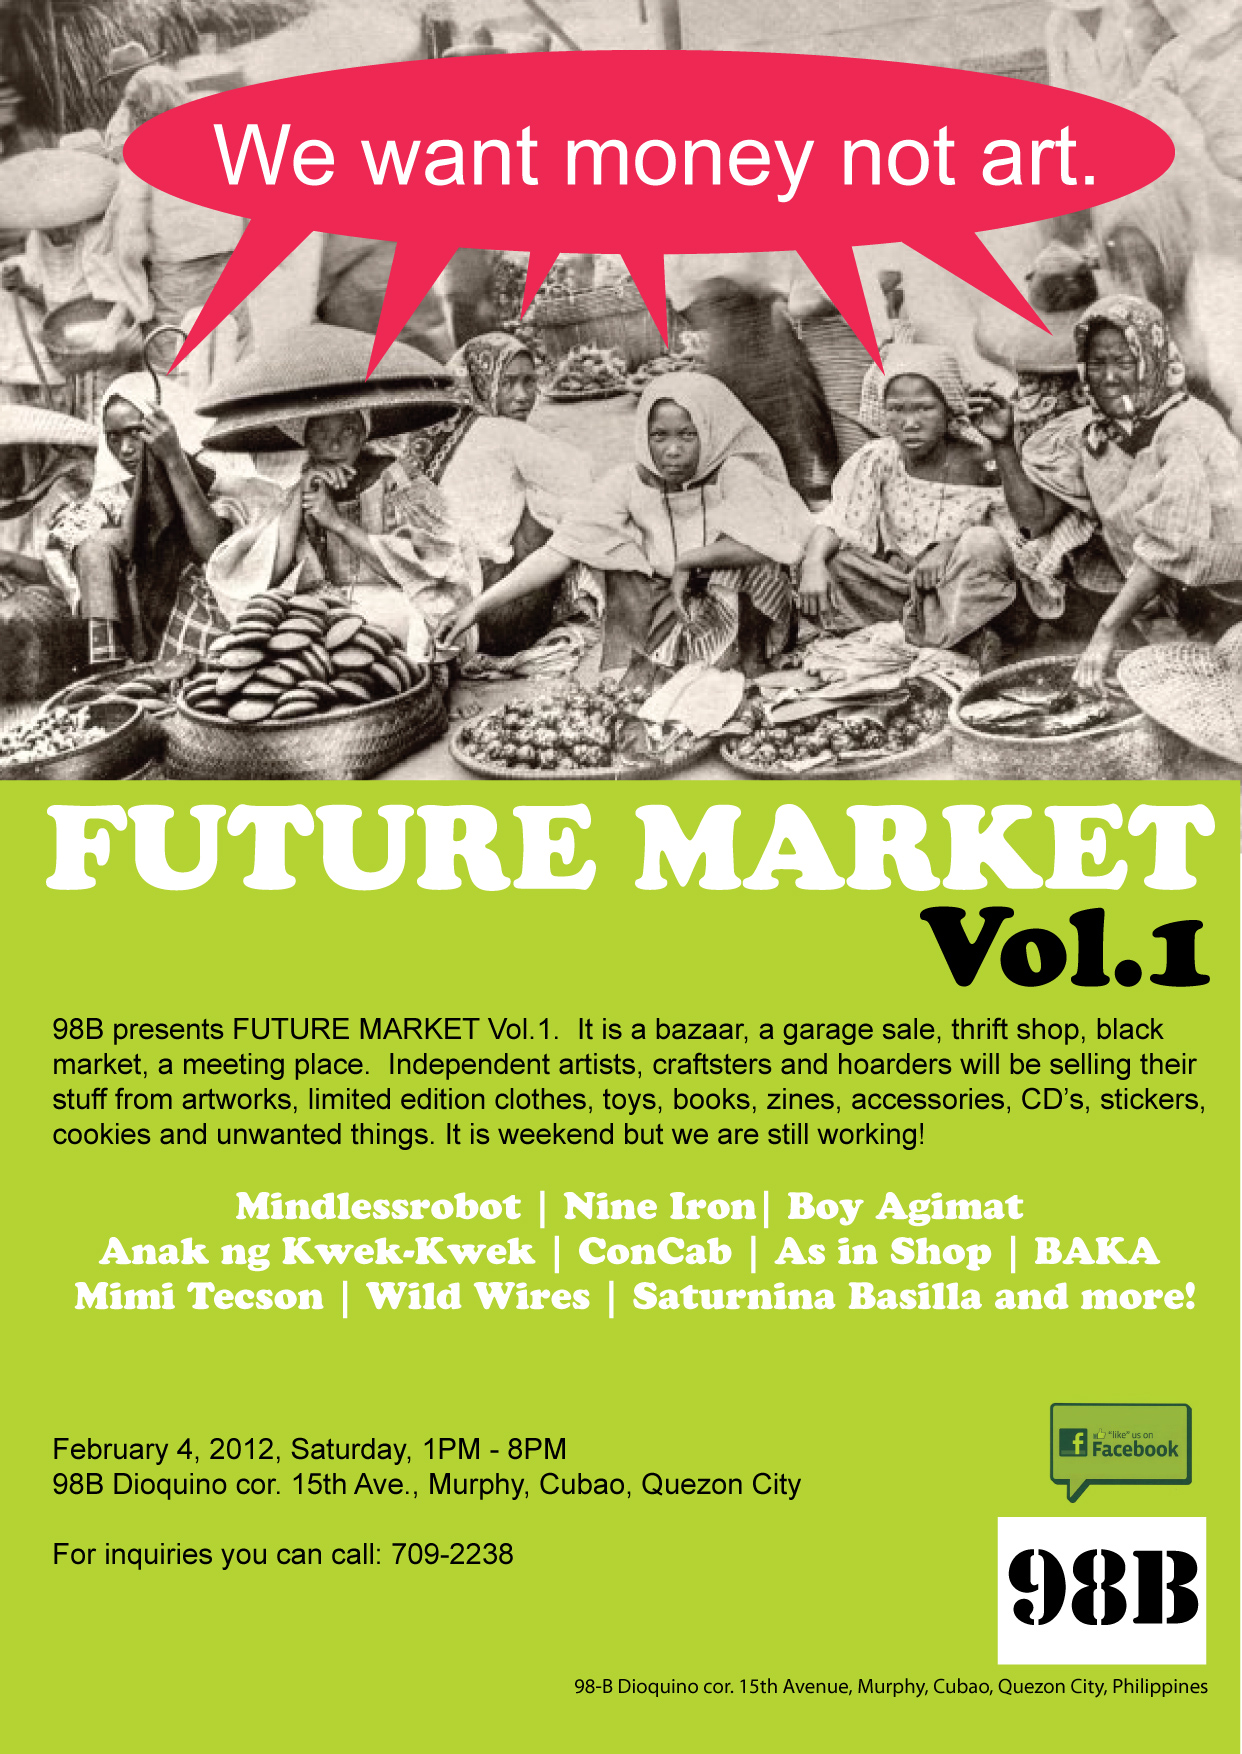 FUTURE MARKET Vol.1 98B presents FUTURE MARKET Vol.1. It is a bazaar, a garage sale, thrift shop, black market, a meeting place. Independent artists, craftsters and hoarders will be selling their stuff from artworks, limited edition clothes, toys, books, zines, accessories, CD's, stickers, cookies and unwanted things. It is weekend but we are still working!  Mindlessrobot | Nine Iron| Boy Agimat | Anak ng Kwek-Kwek | ConCab | As in Shop| BAKA | Mimi Tecson | Wild Wires | Saturnina Basilla and more! February 4, 2012, Saturday, 1PM - 8PM  98B Dioquino cor. 15th Ave., Murphy, Cubao, Quezon City For inquiries you can call: 709-2238